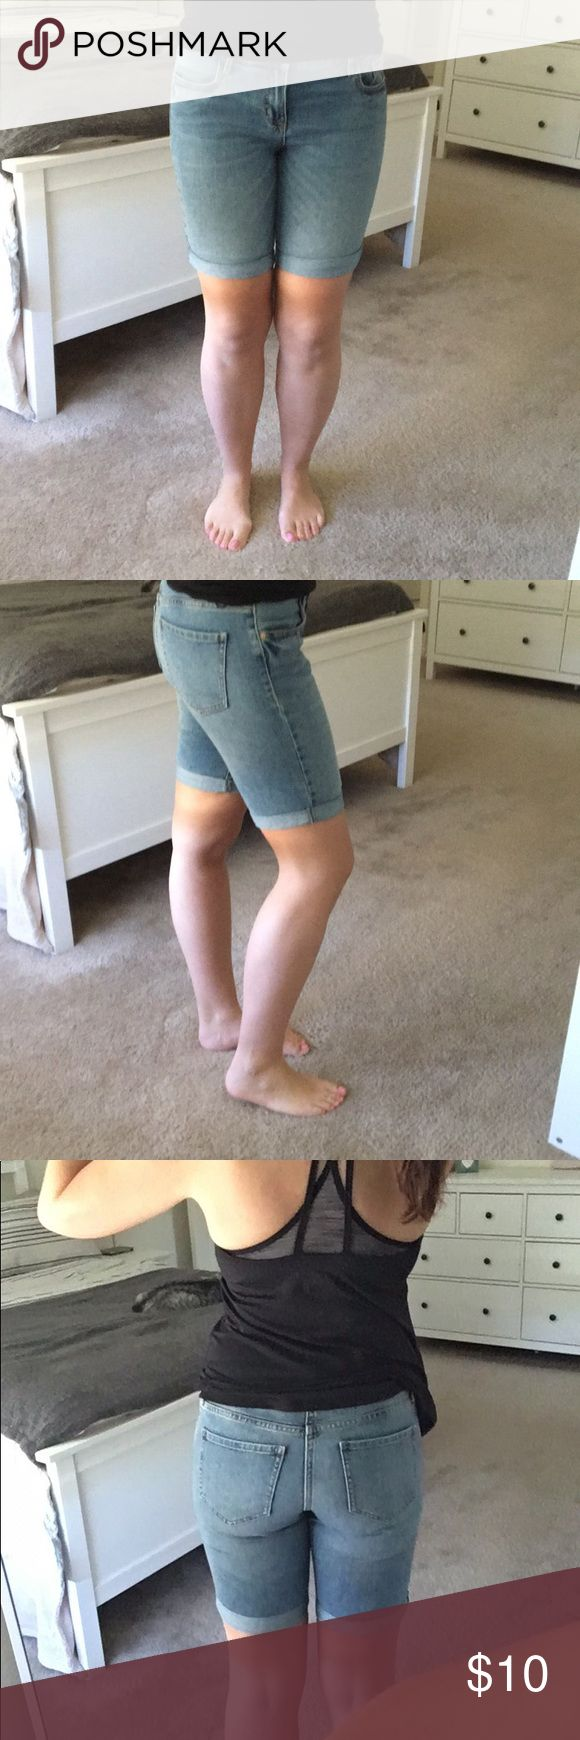 """Old navy denim bermuda Selling my Old navy denim bermuda in size 2! I worn it once but it's just too """"long"""" for Texas weather! 🙈😜 Old Navy Shorts Bermudas"""